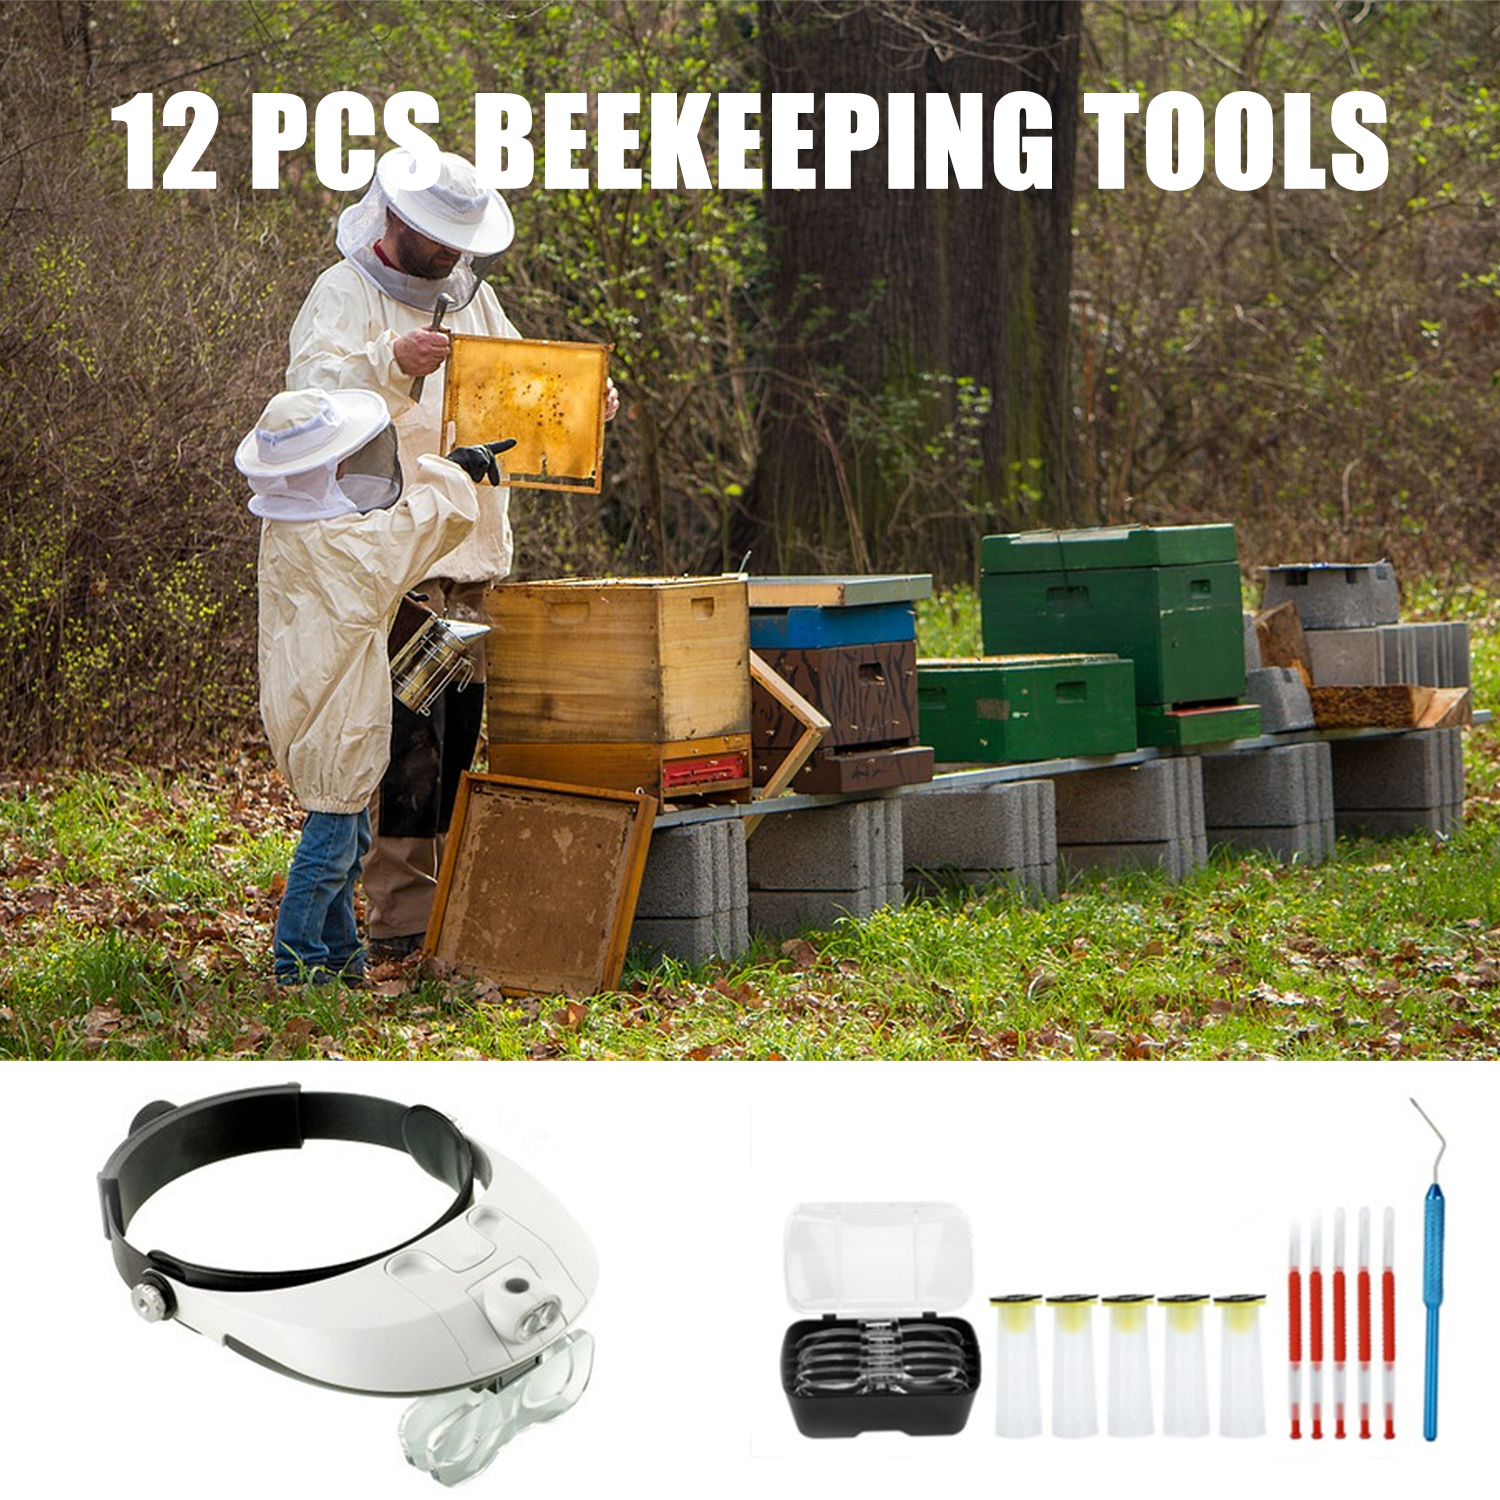 1x Beekeeping Bee Moving Magnifying Head-mounted Magnification Mirror Lens Home